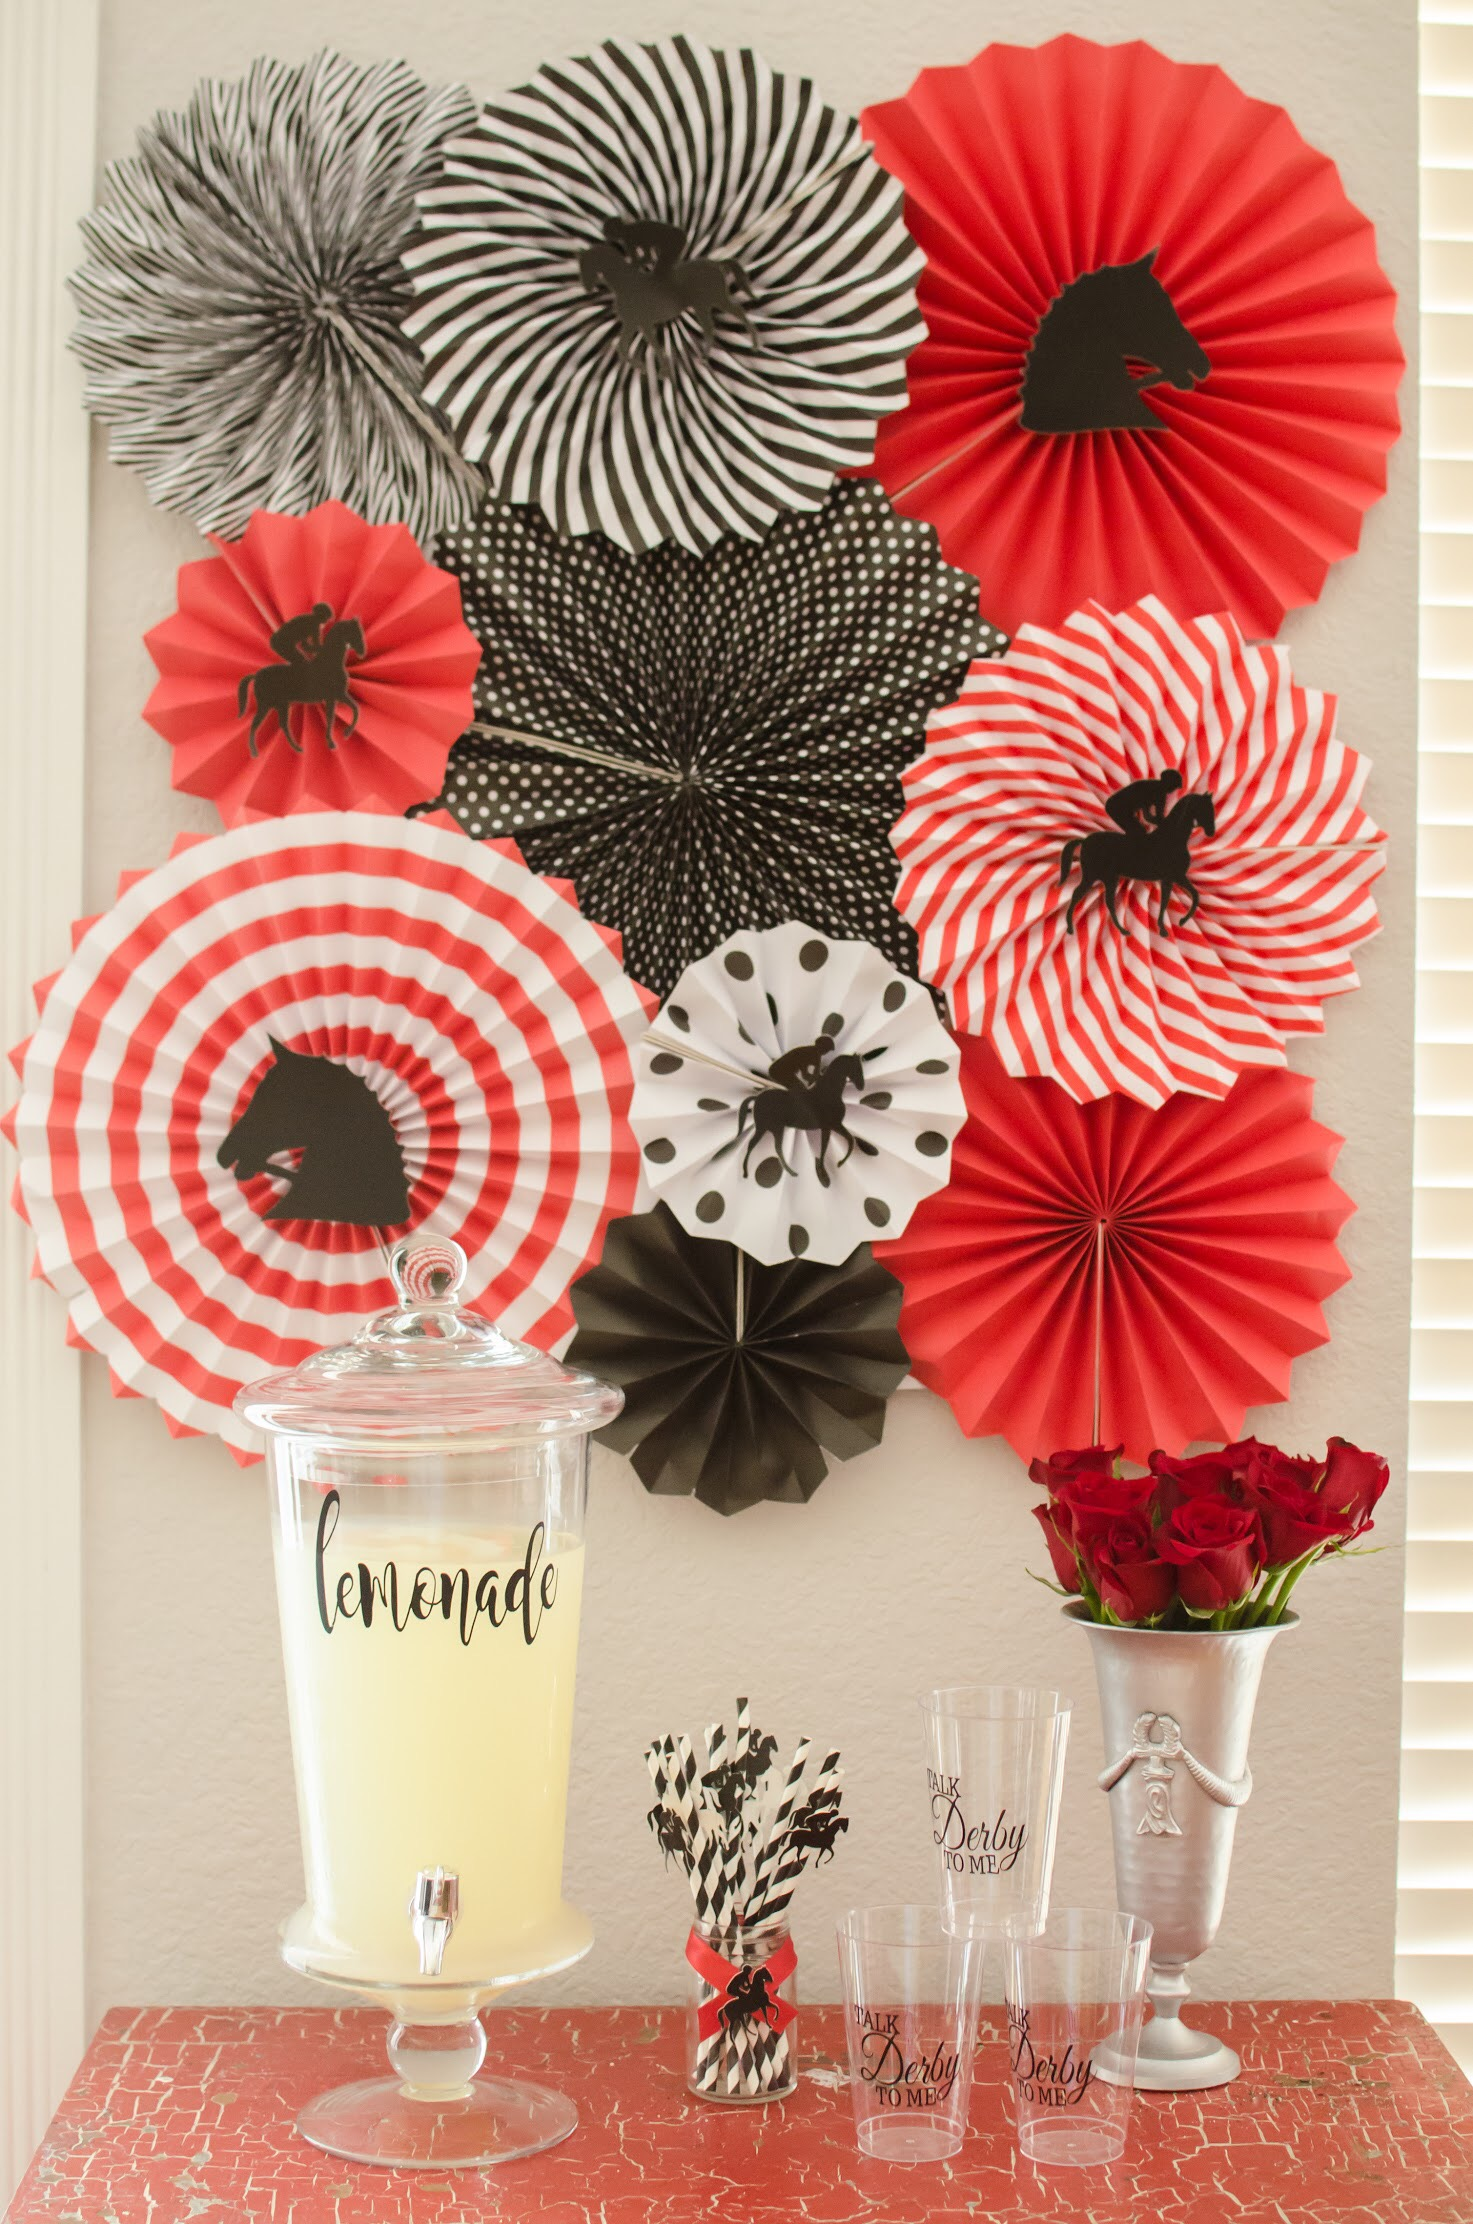 Dress up your Kentucky Derby Drink station with paper fans in your party colors. Add horse shaped cut-outs to add more detail to them. Created by party planner Mint Event Design www.minteventdesign.com #kentuckyderbyparty #kentuckyderby #partyideas #derbyday #runfortheroses #partybackdrop